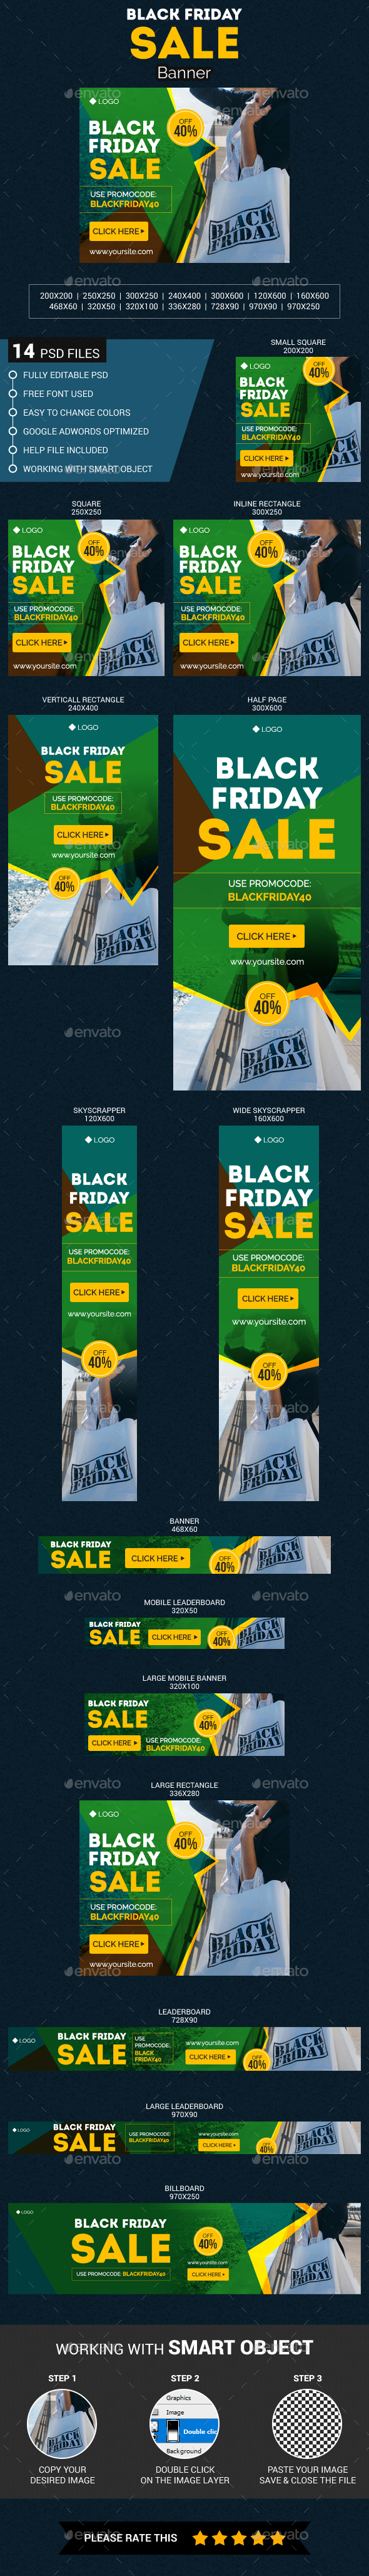 Black Friday Sale - Banners & Ads Web Elements